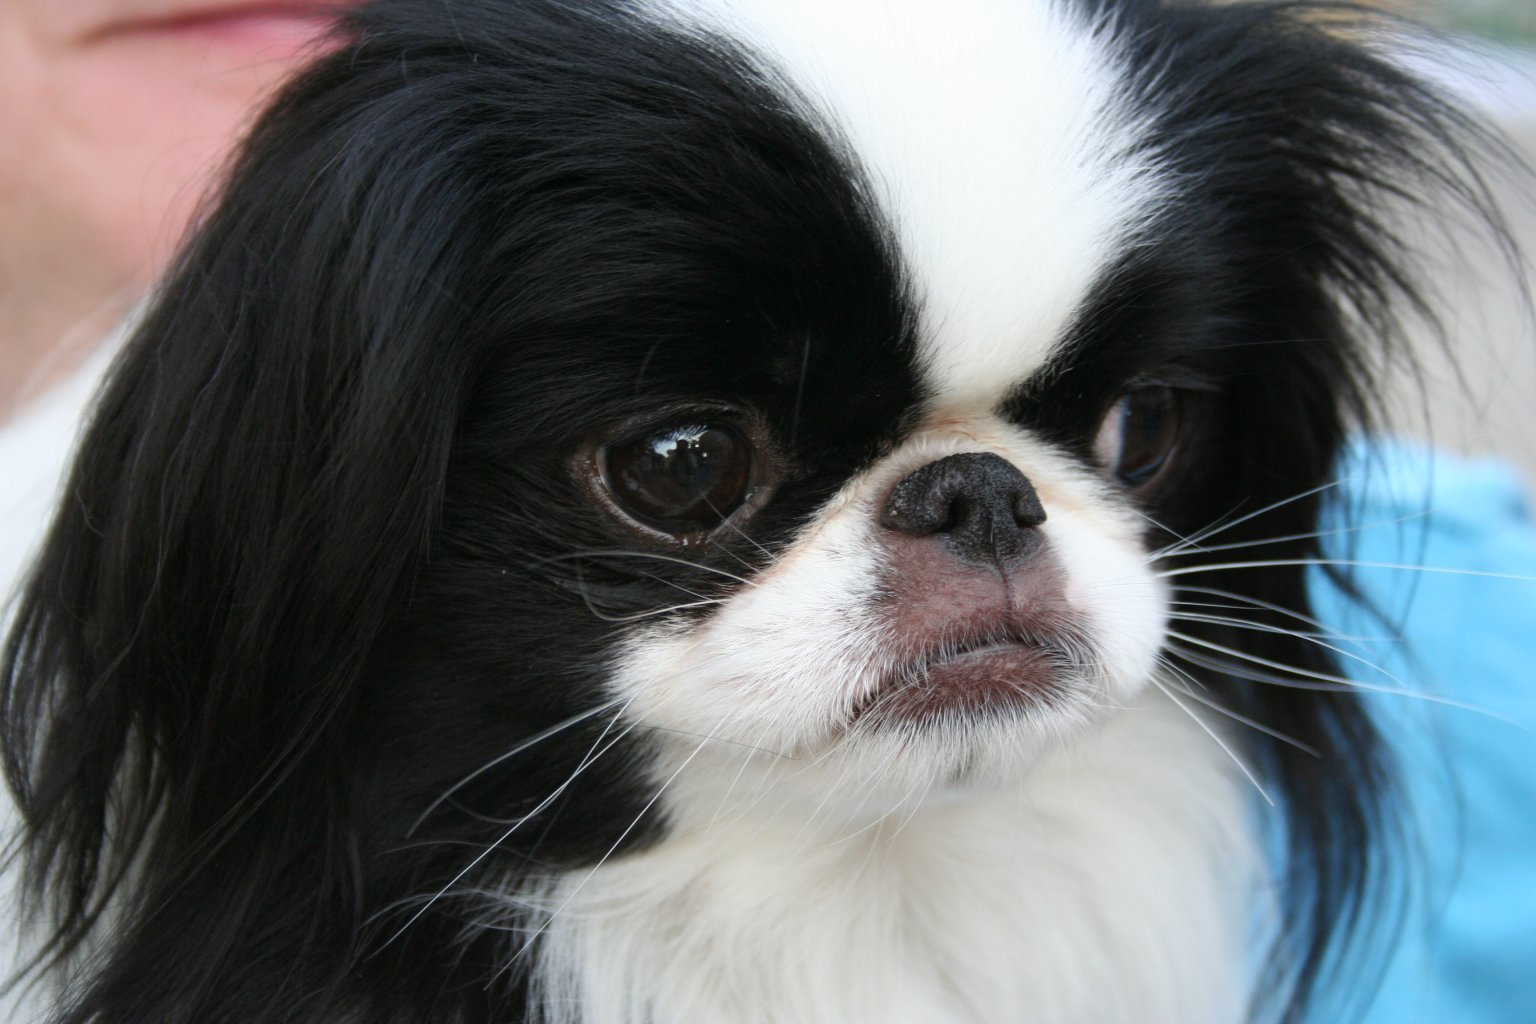 Japanese Chin dog face wallpaper